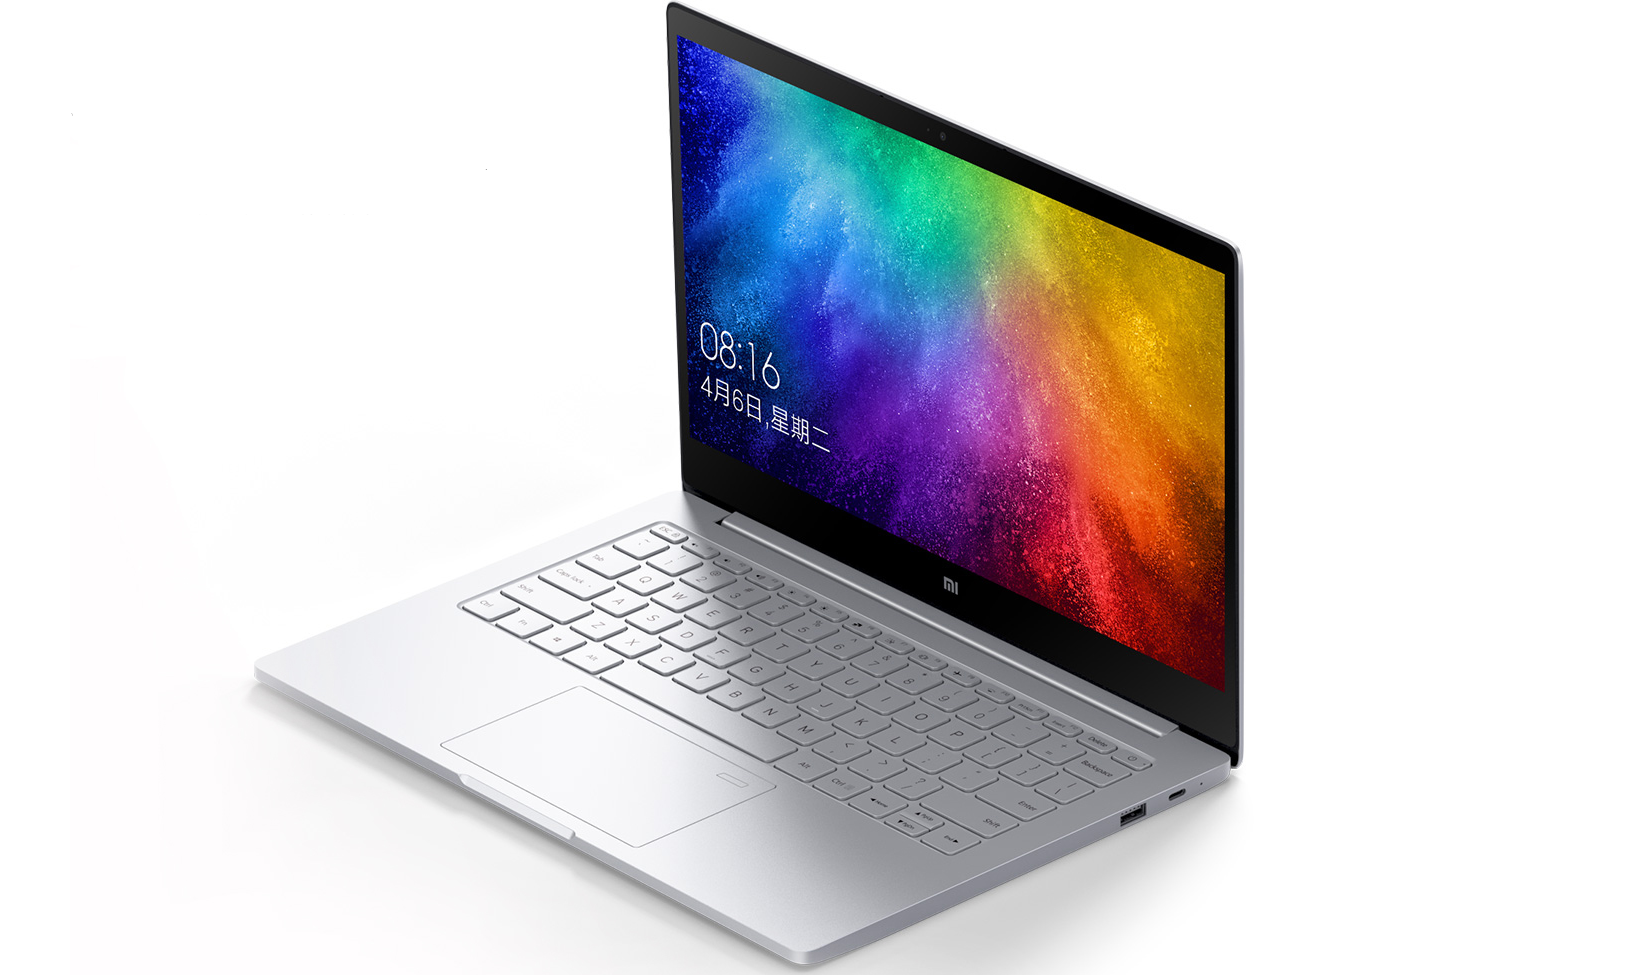 Xiaomi Mi Notebook Air i7 8550U 8/256 GB MX150 – Banggood